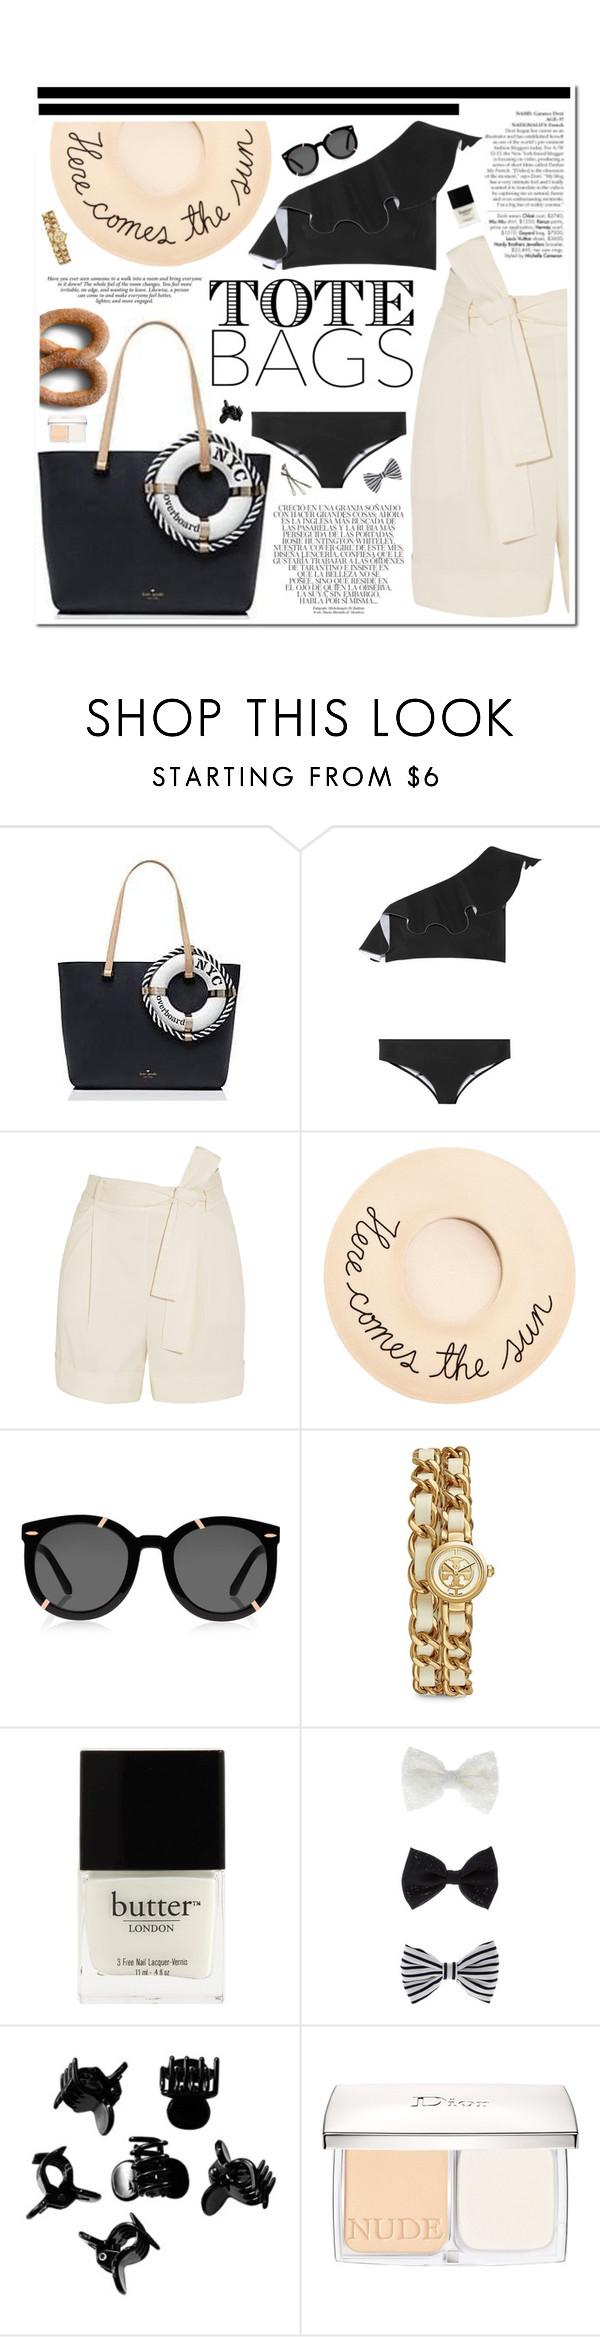 """""""Untitled #361"""" by piccolamarisa ❤ liked on Polyvore featuring Kate Spade, Avenue, Whiteley, Lisa Marie Fernandez, La Perla, Eugenia Kim, Karen Walker, Tory Burch, Butter London and Accessorize"""